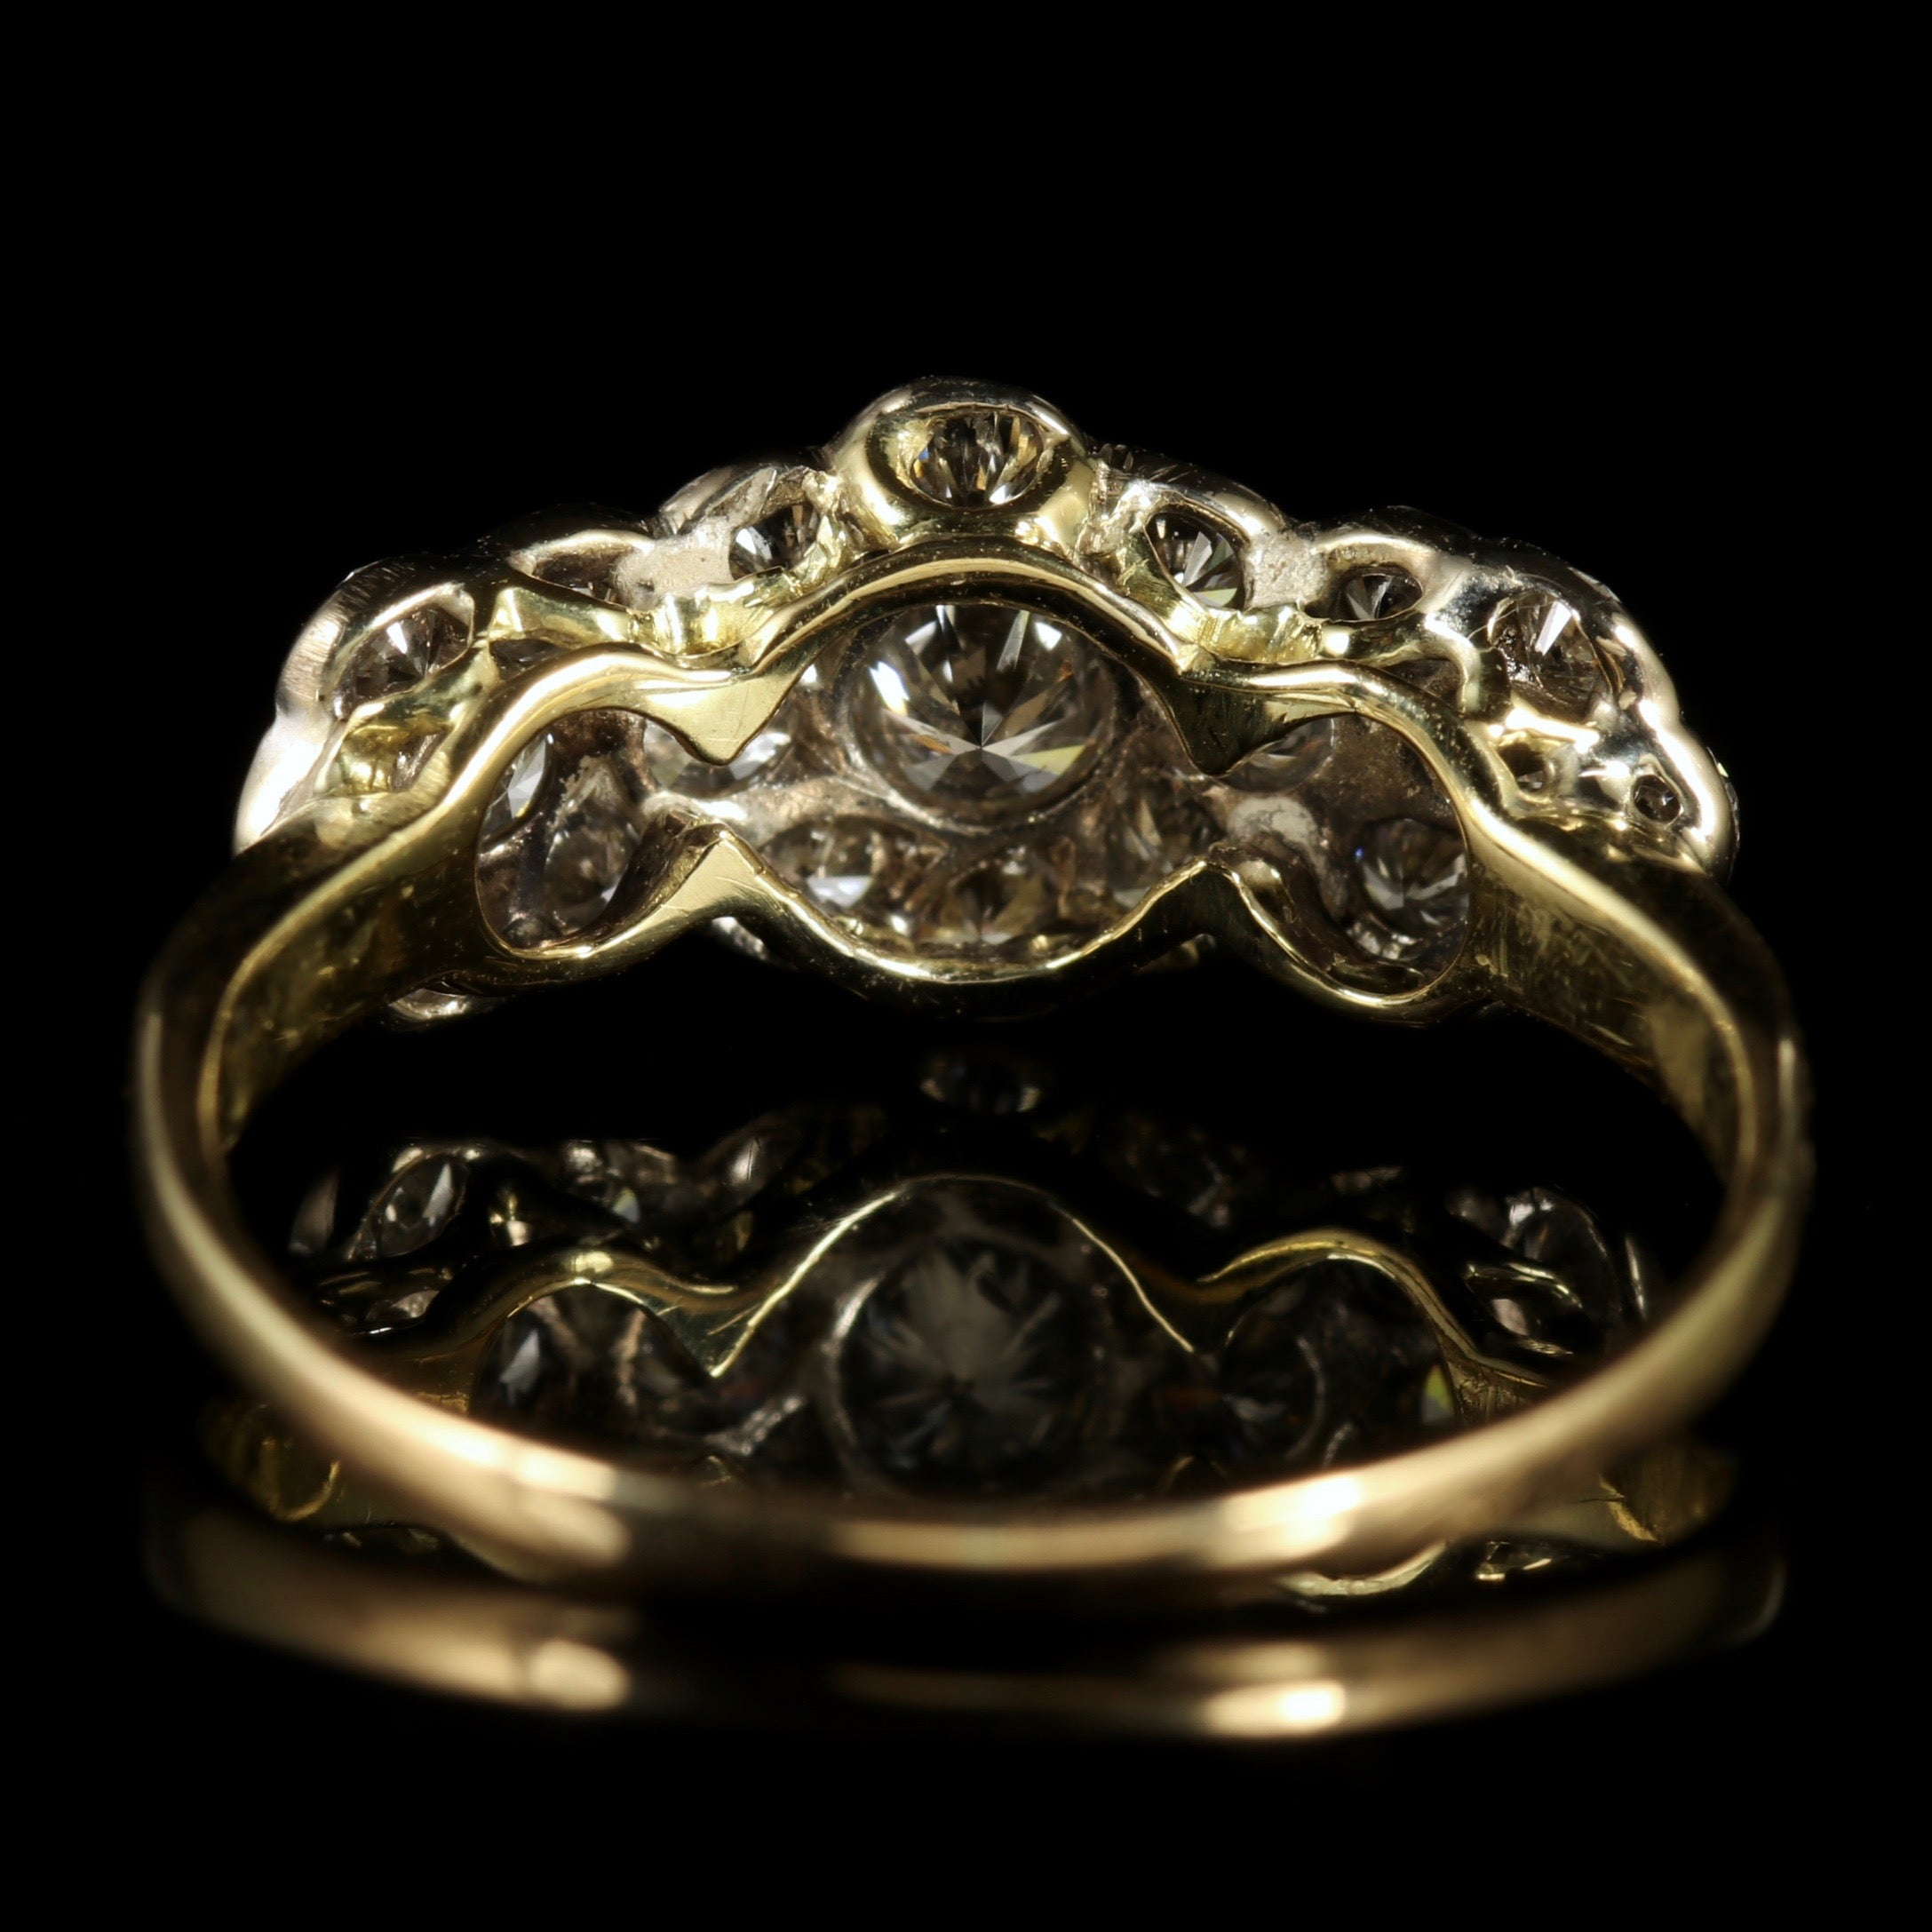 antique jewelry rings diamond victorian for of carat sale at id diamonds cluster gold ring master j gent engagement